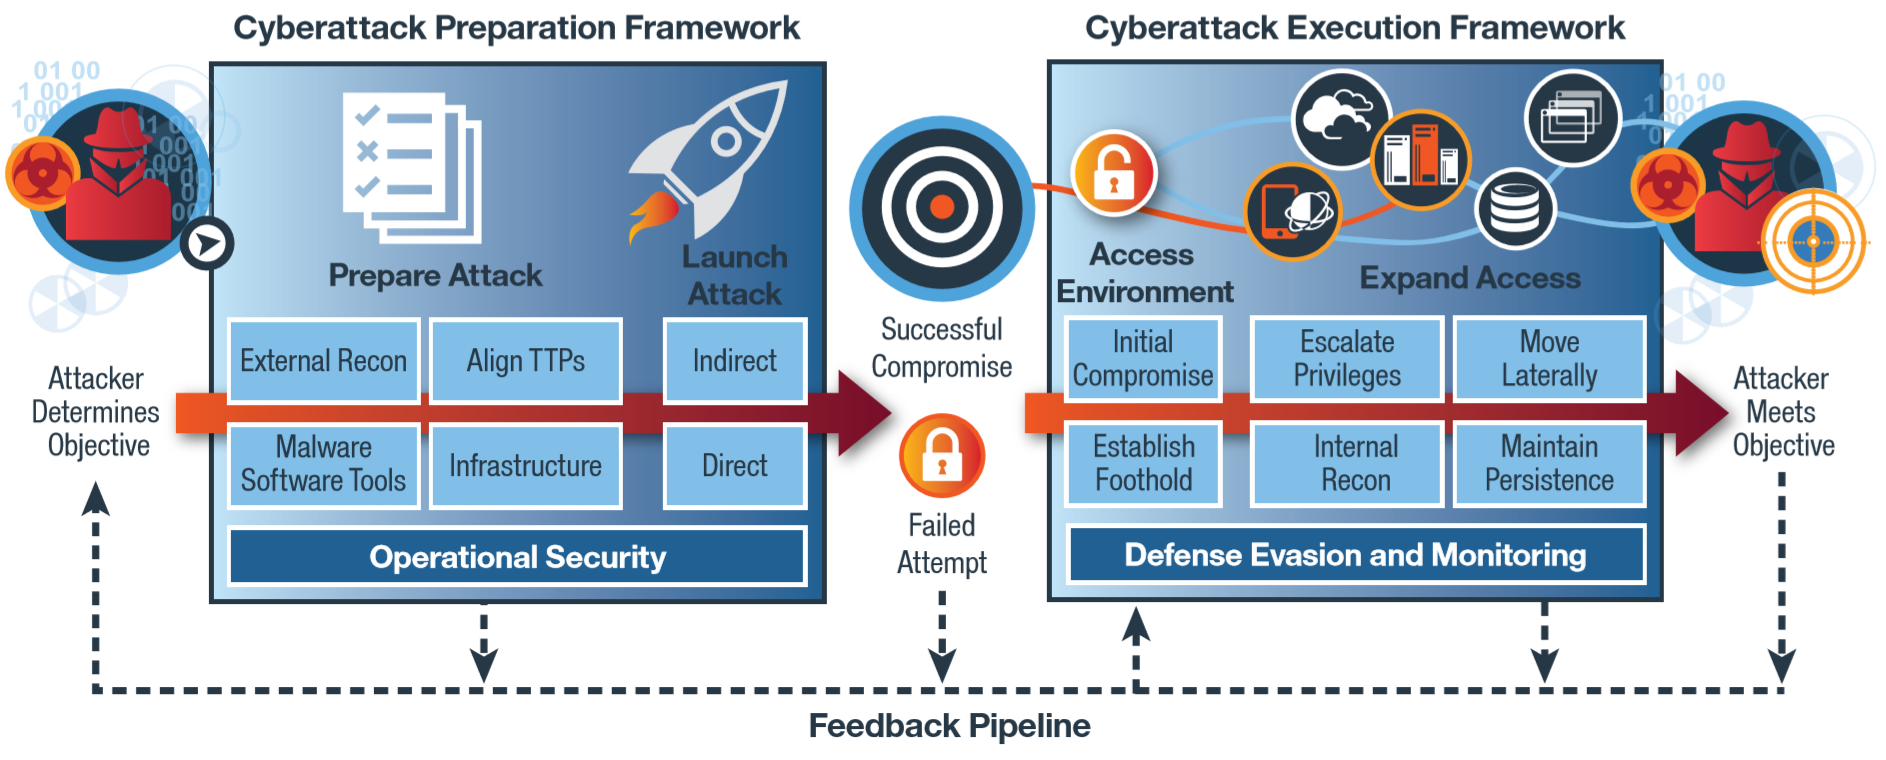 Figure 2: X-Force IRIS Cyberattack Preparation and Execution Frameworks